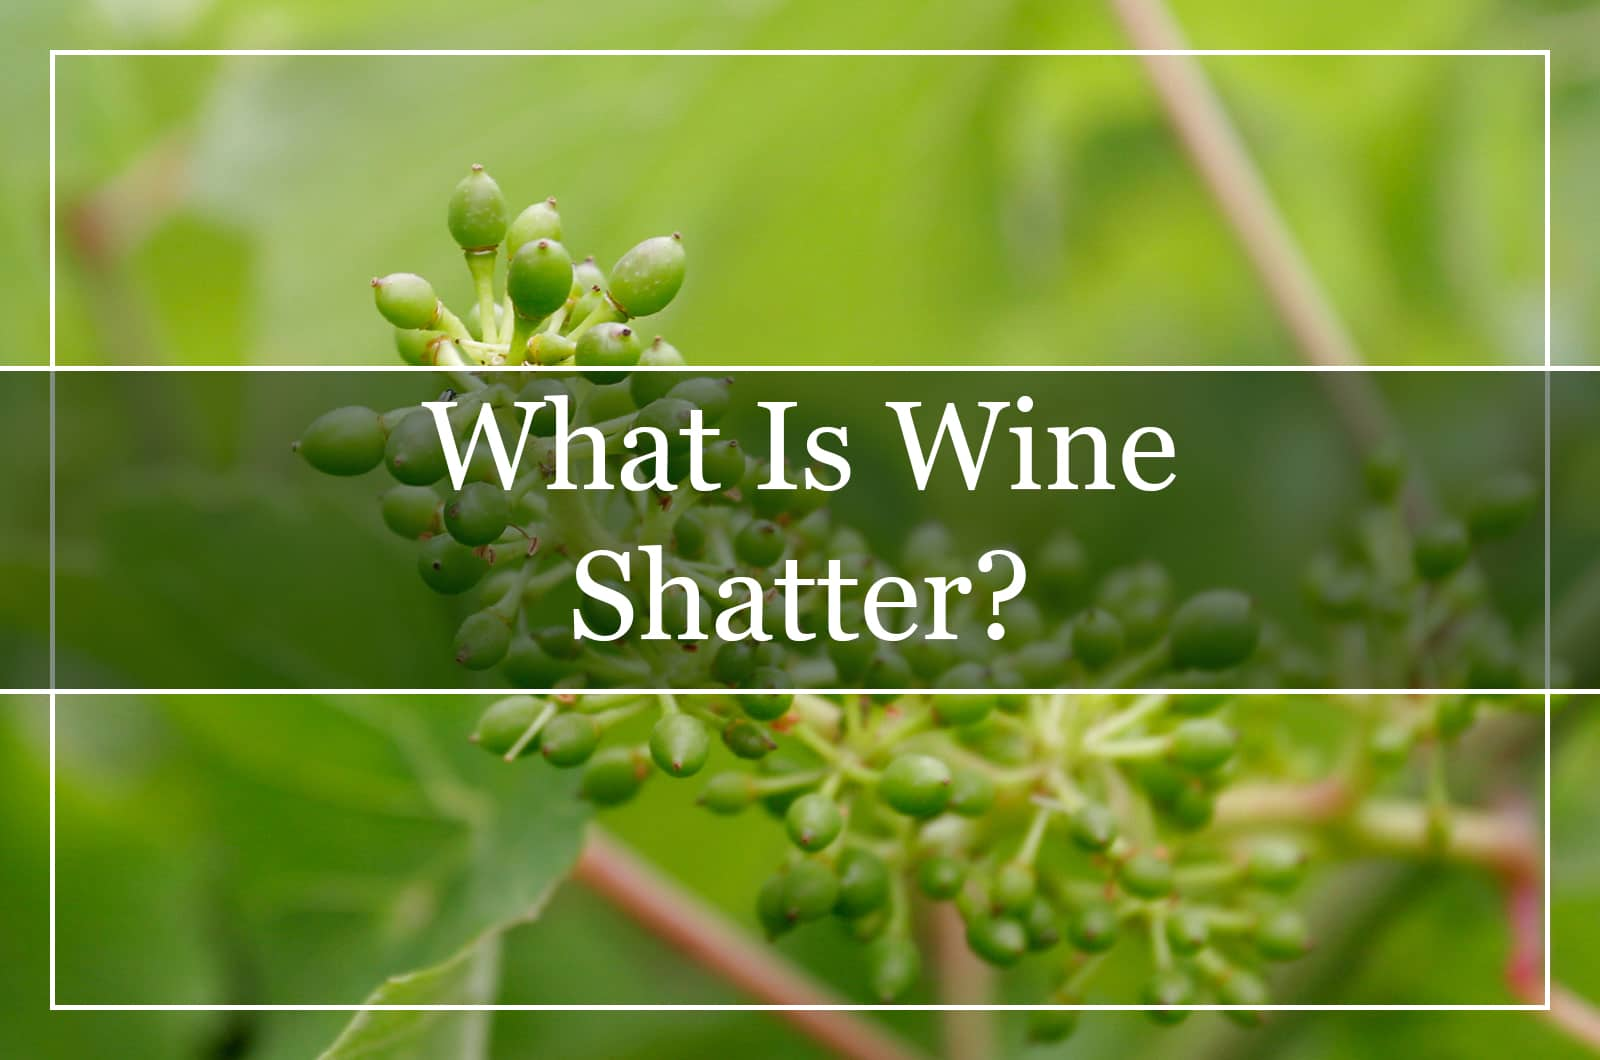 What Is Wine Shatter?